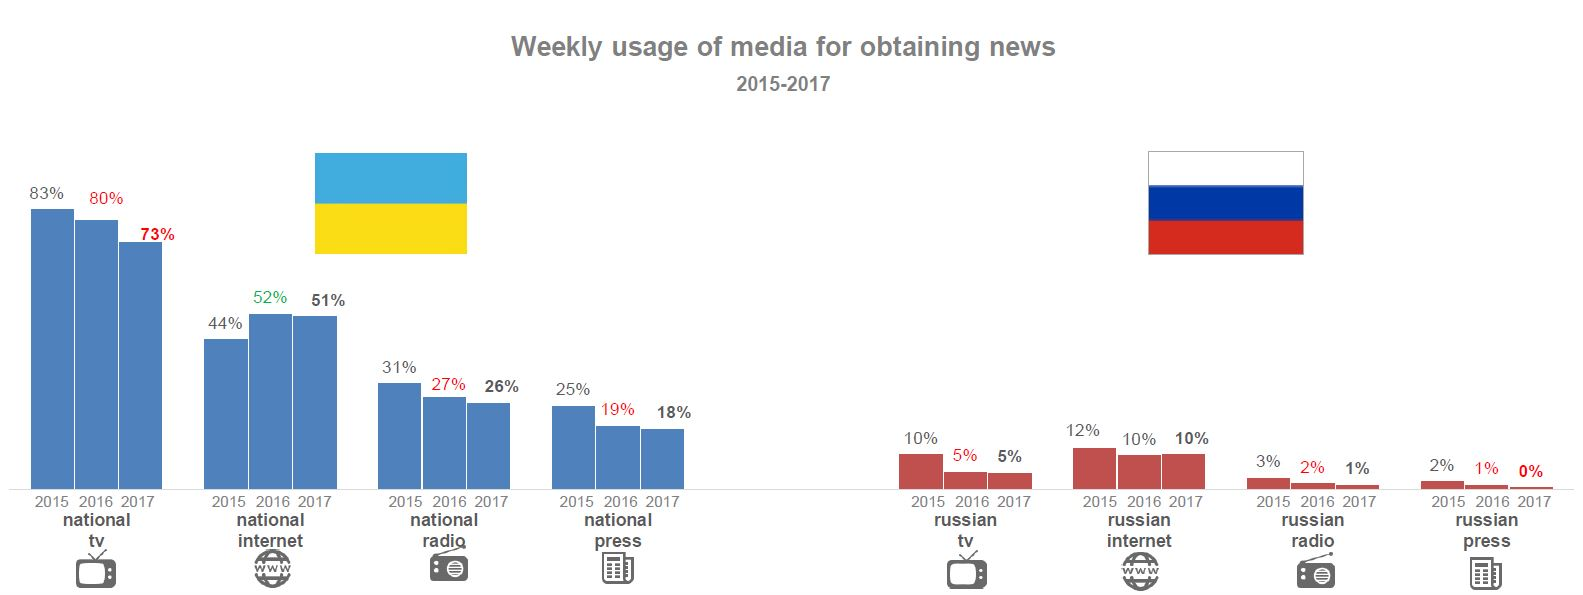 Weekly usage of media for obtaining news 2015-2017